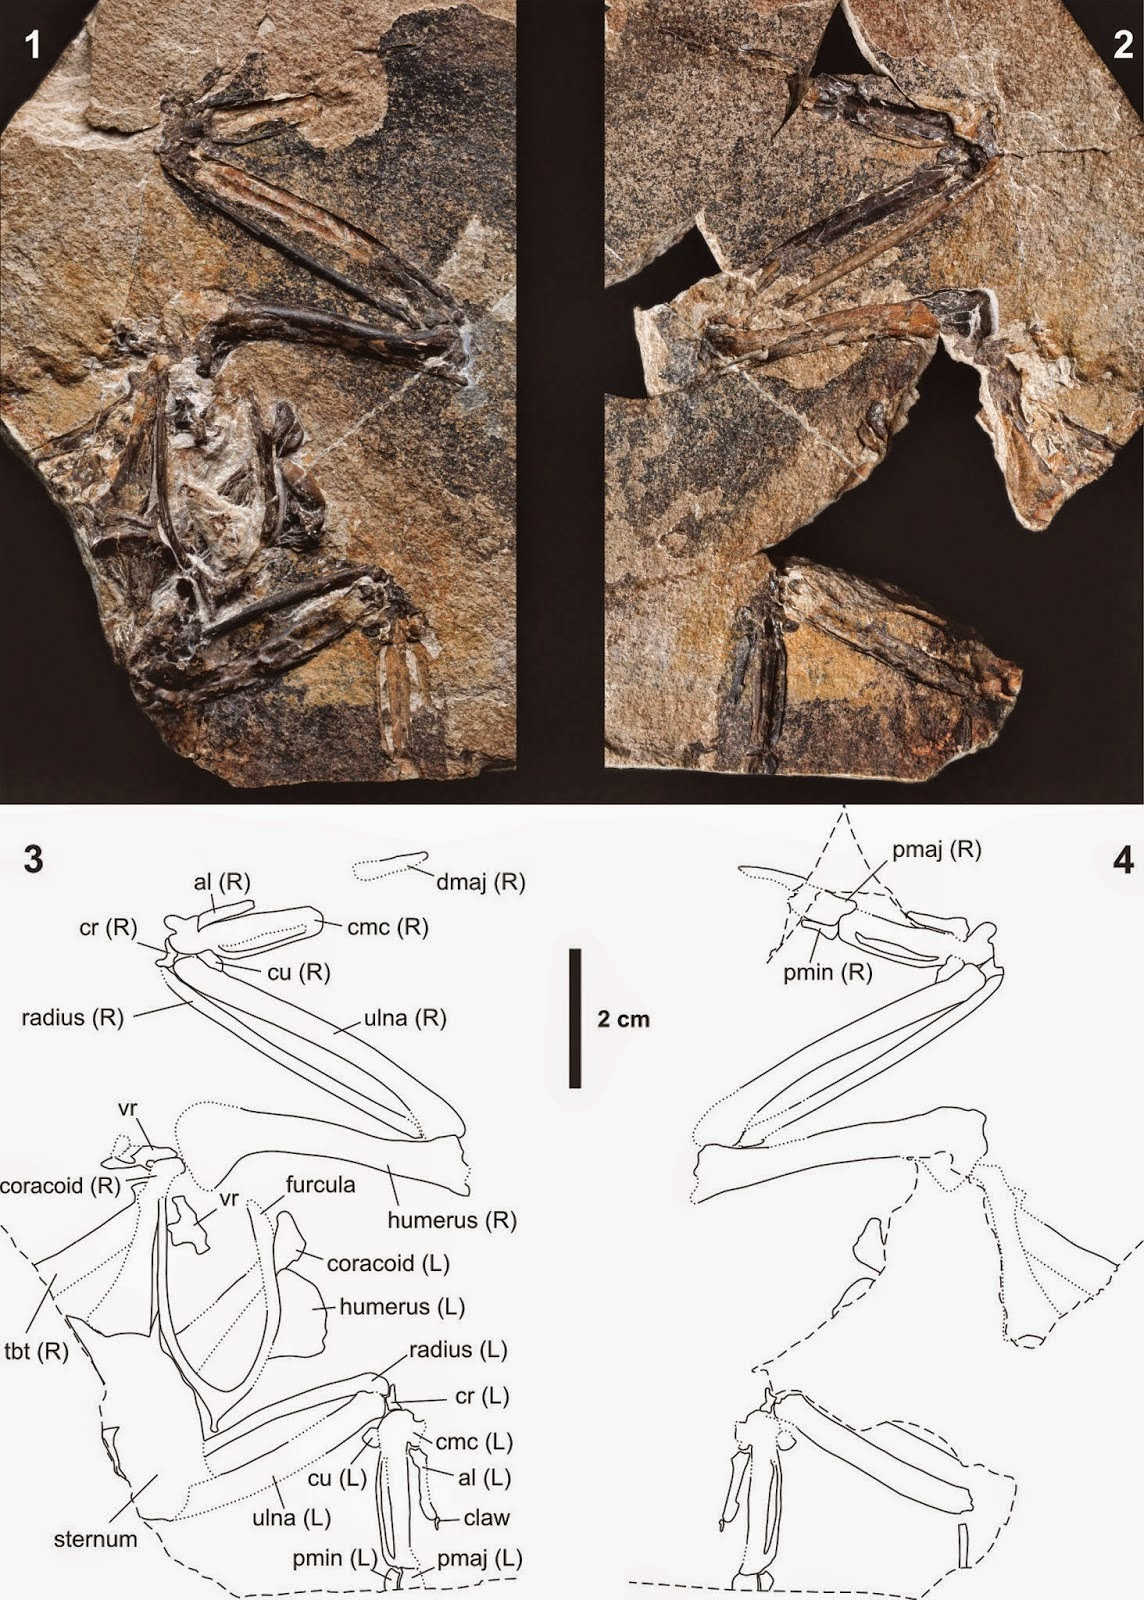 http://sciencythoughts.blogspot.co.uk/2014/11/a-galliform-bird-from-oligocene-of.html